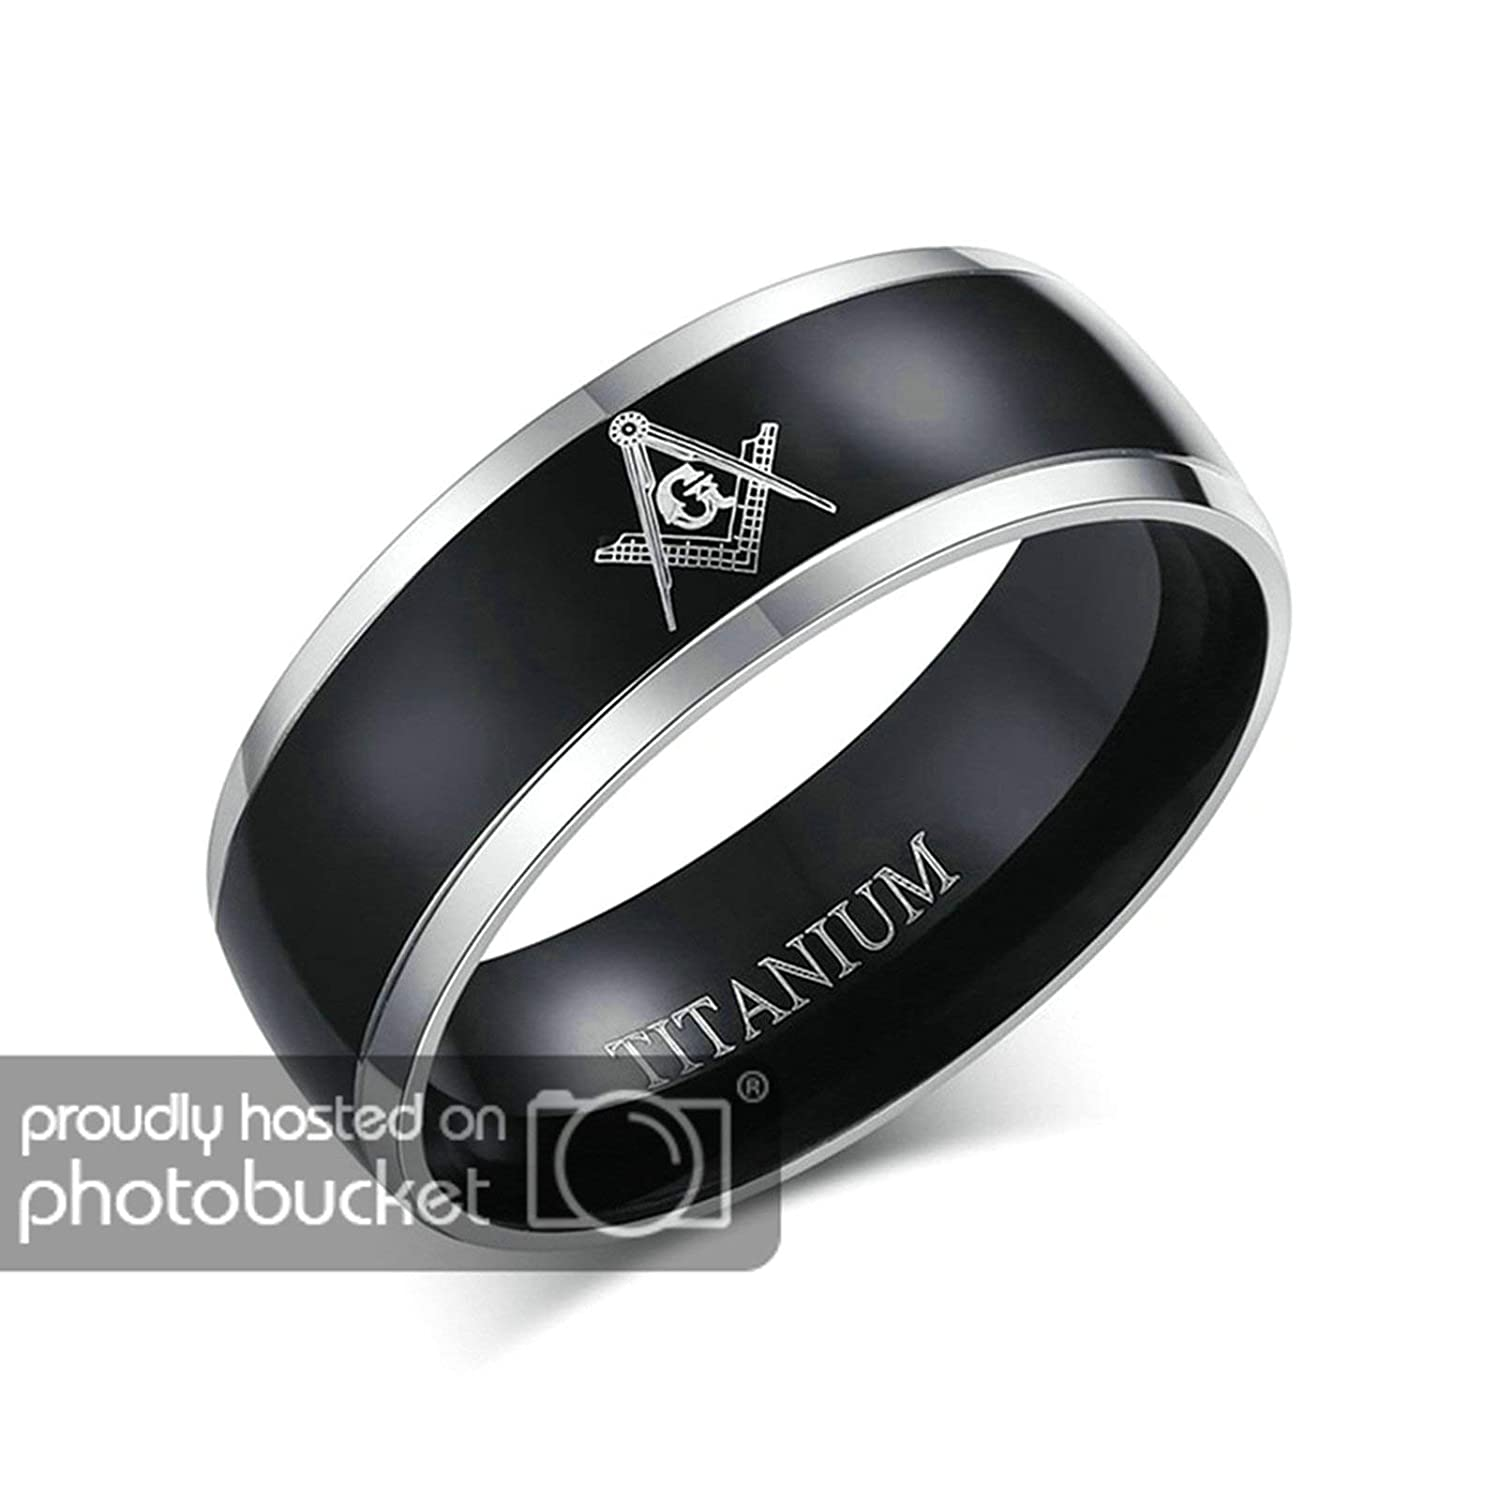 Aooaz Jewelry Wedding Ring 8Mm Rings Ring Silver Black Masonic Rings for Couple Ring